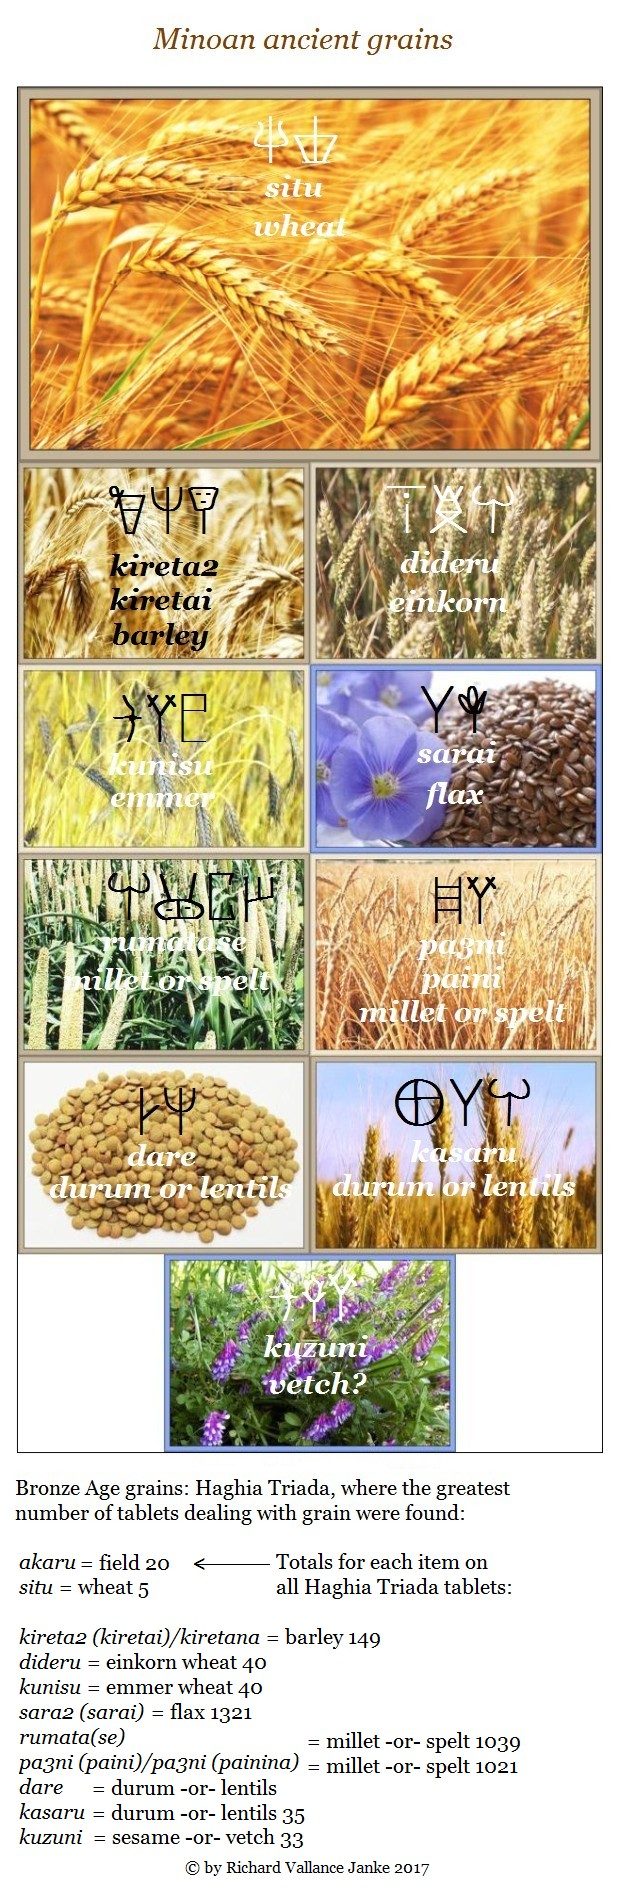 Minoan ancient grains